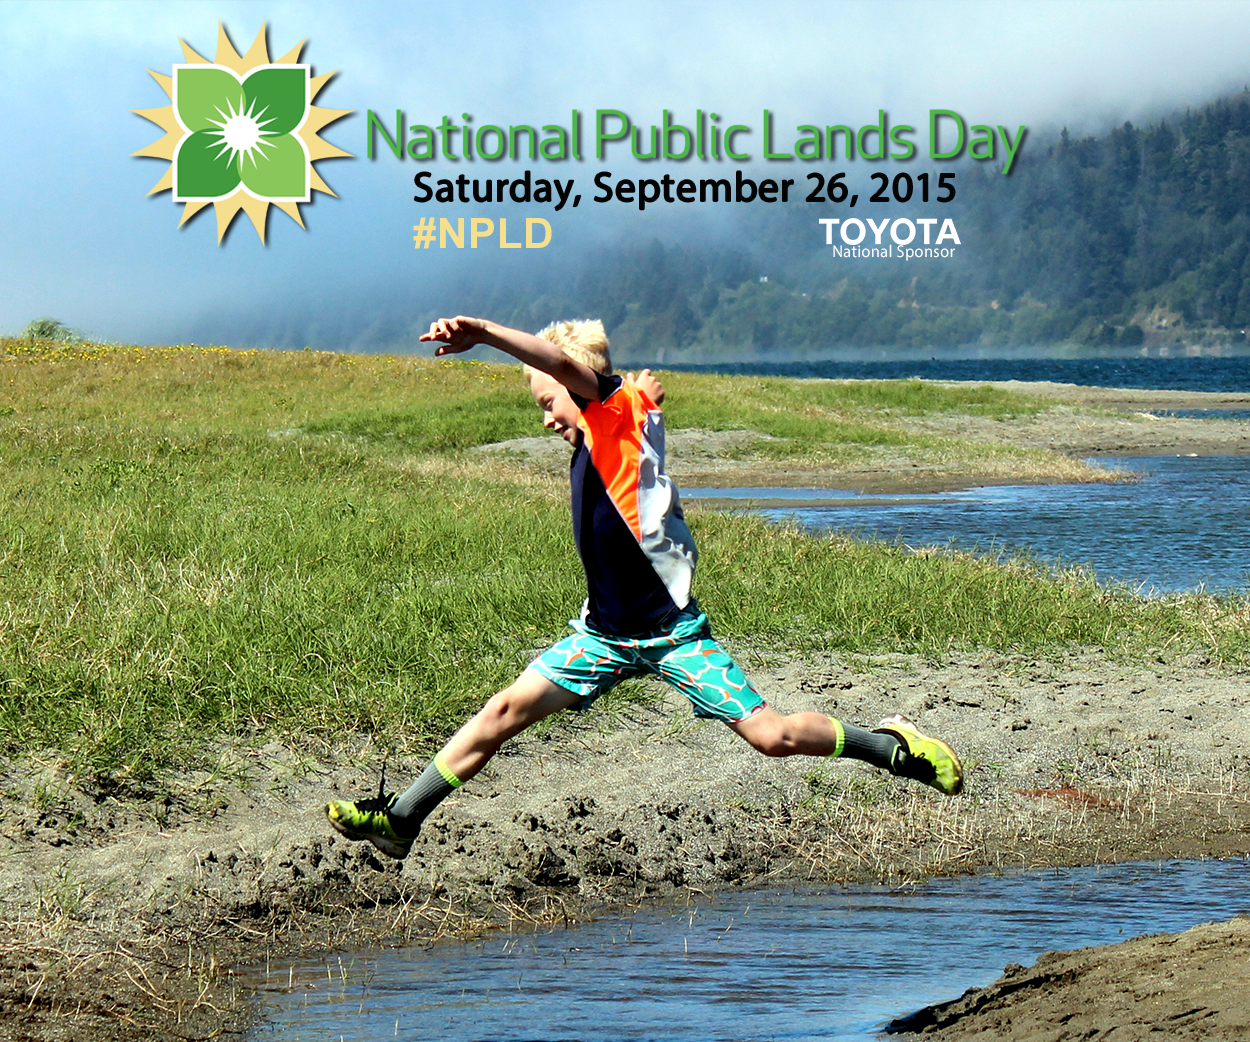 National Public Lands Day 2015